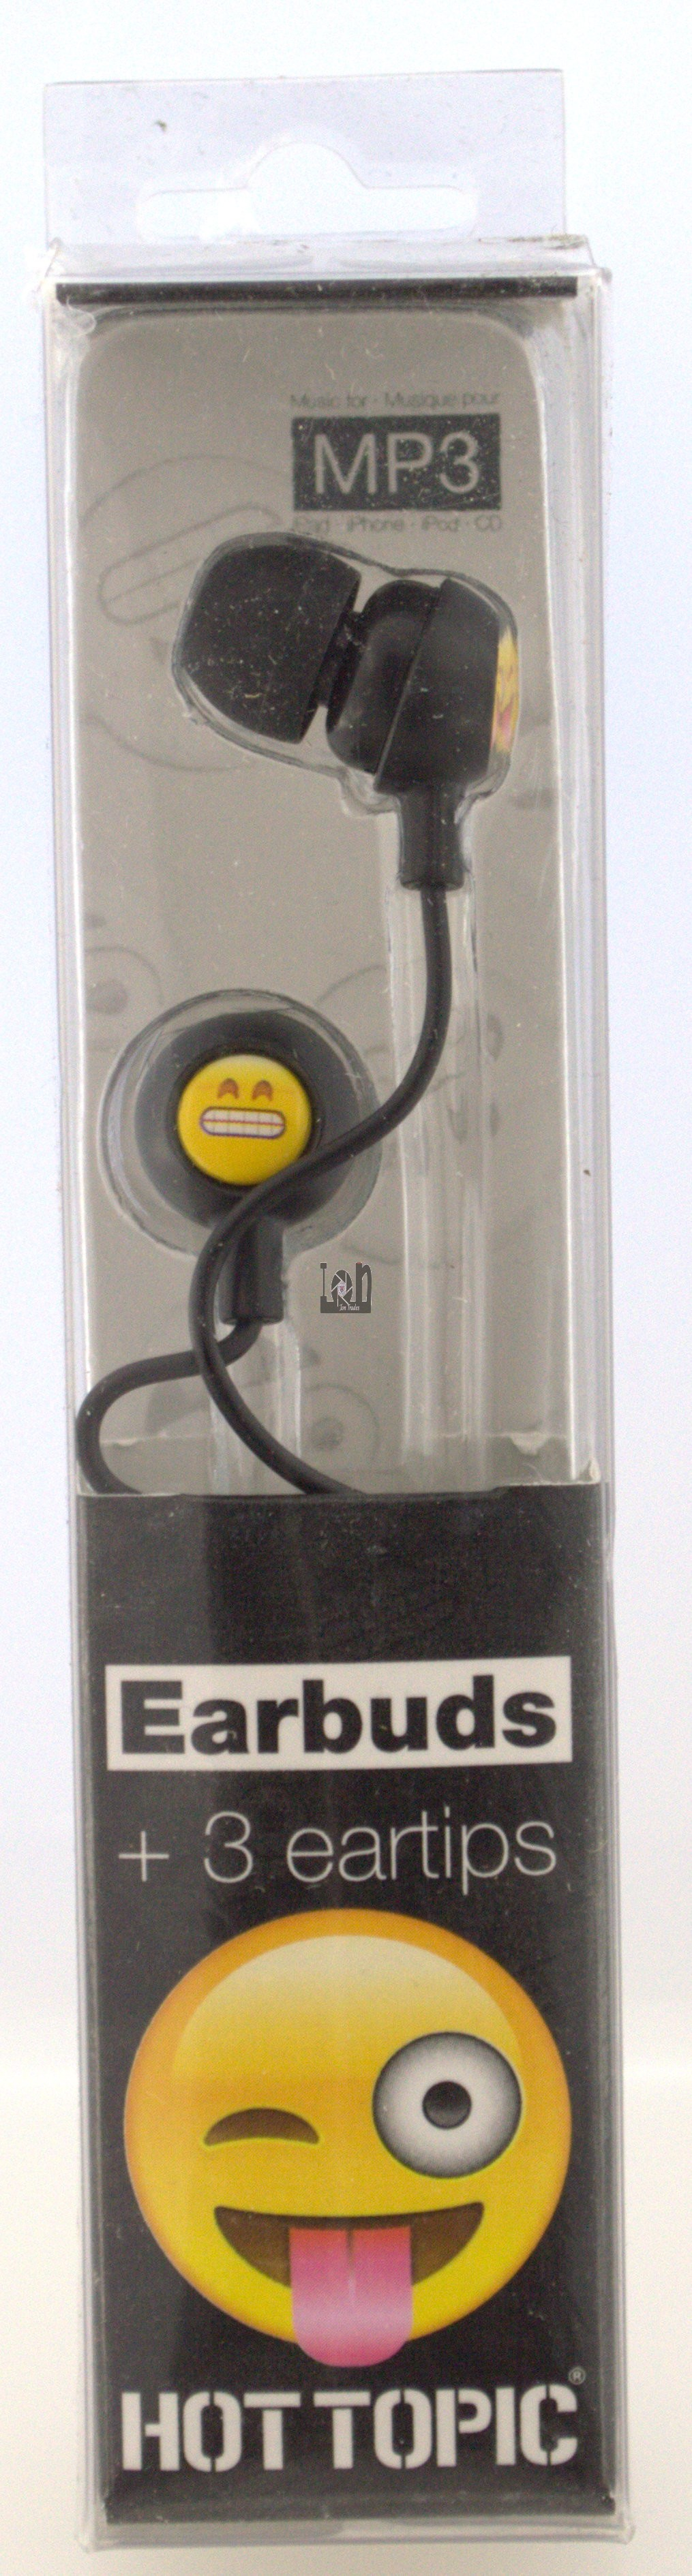 Hot Topic Earbuds Silly Emoji Smiley Face